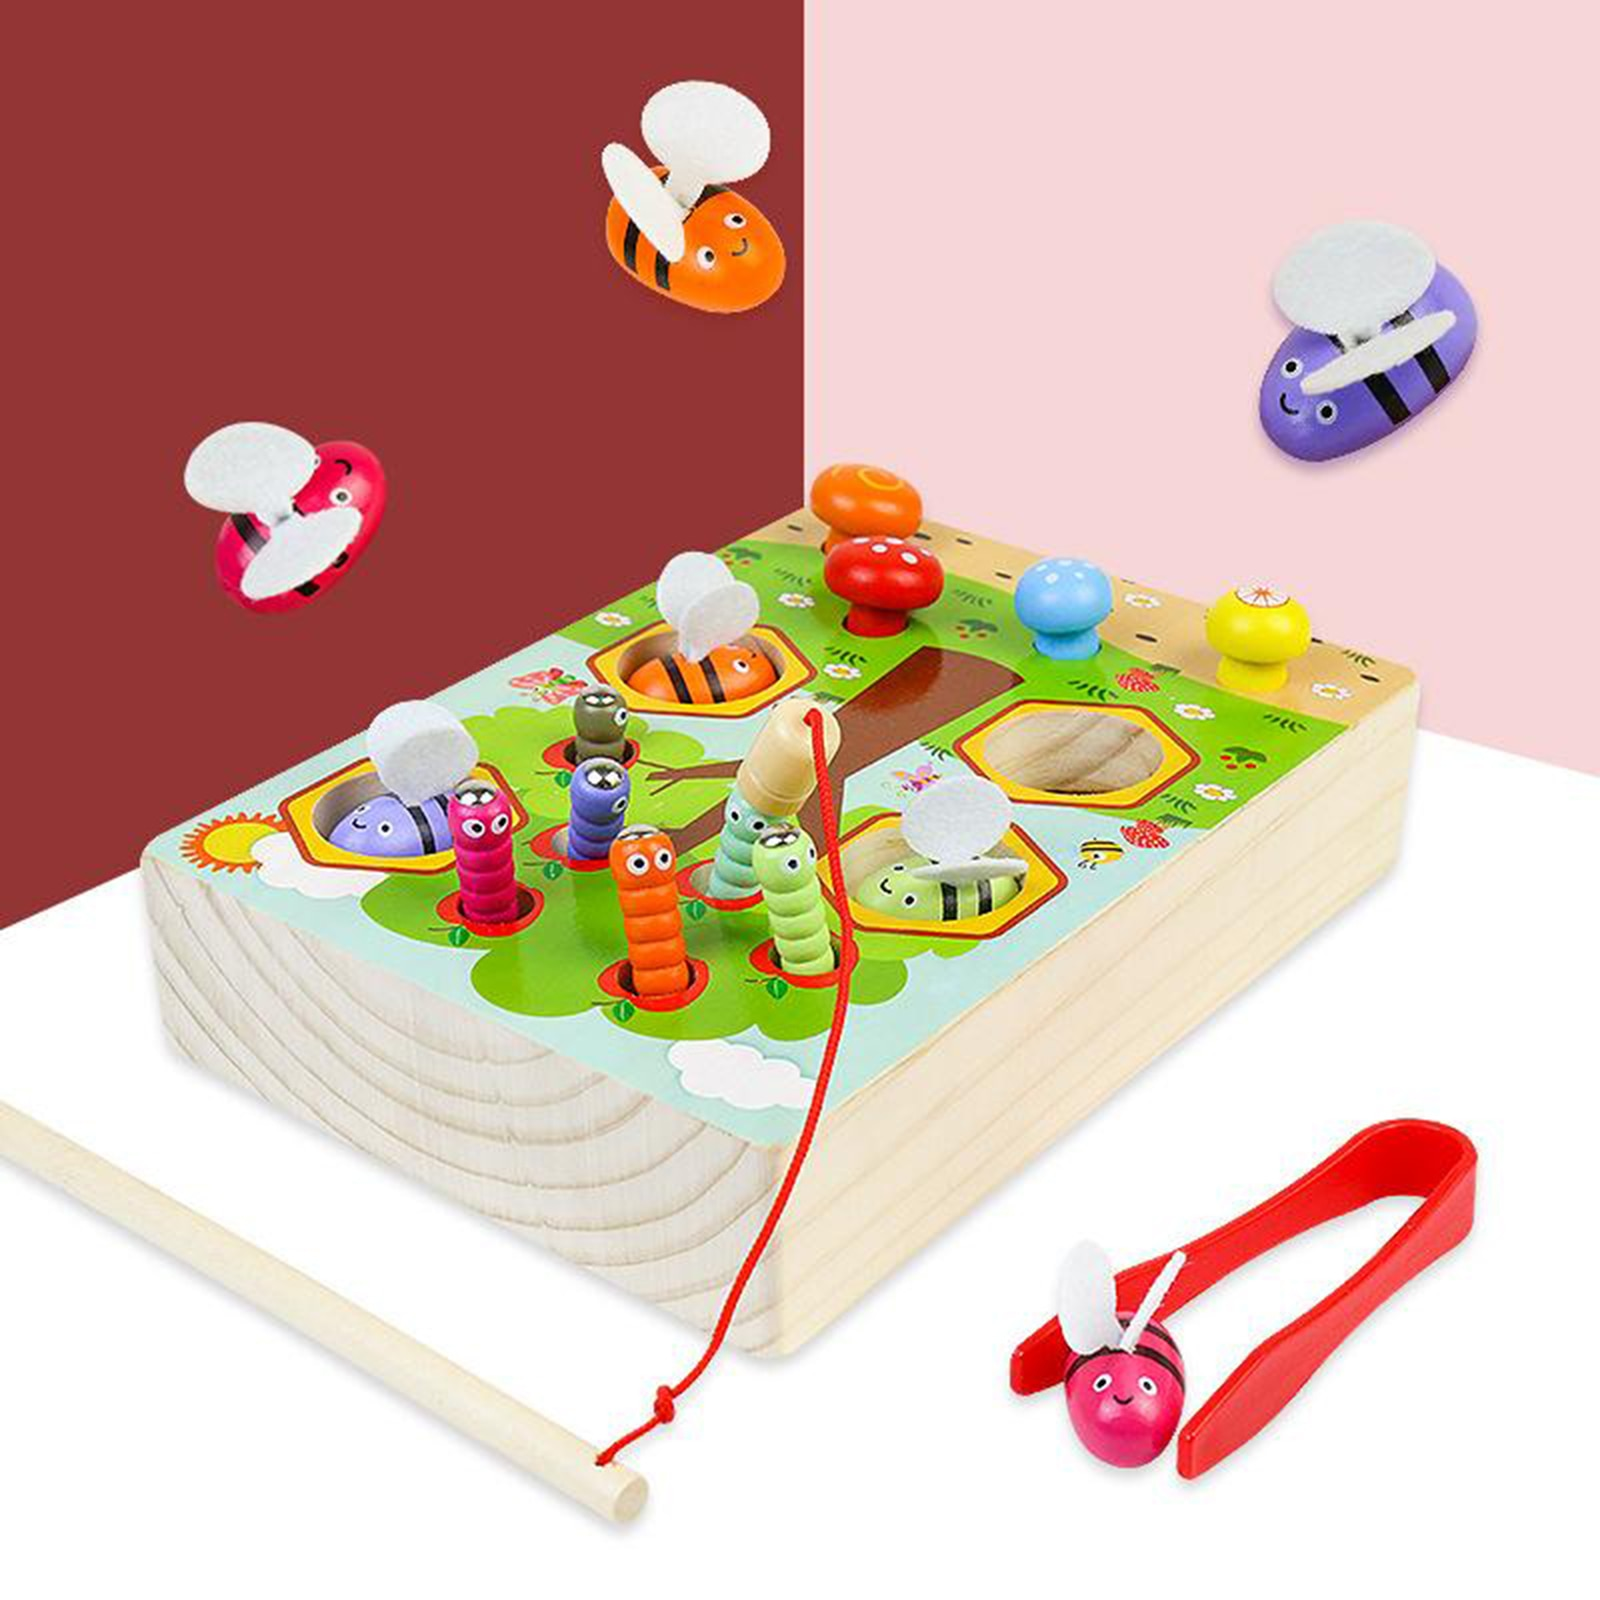 Montessori Educational Wooden Toys Materials Kids Clip Bee Magnetic Fishing Catch Worm Interactive Toys For Toddlers Children недорого